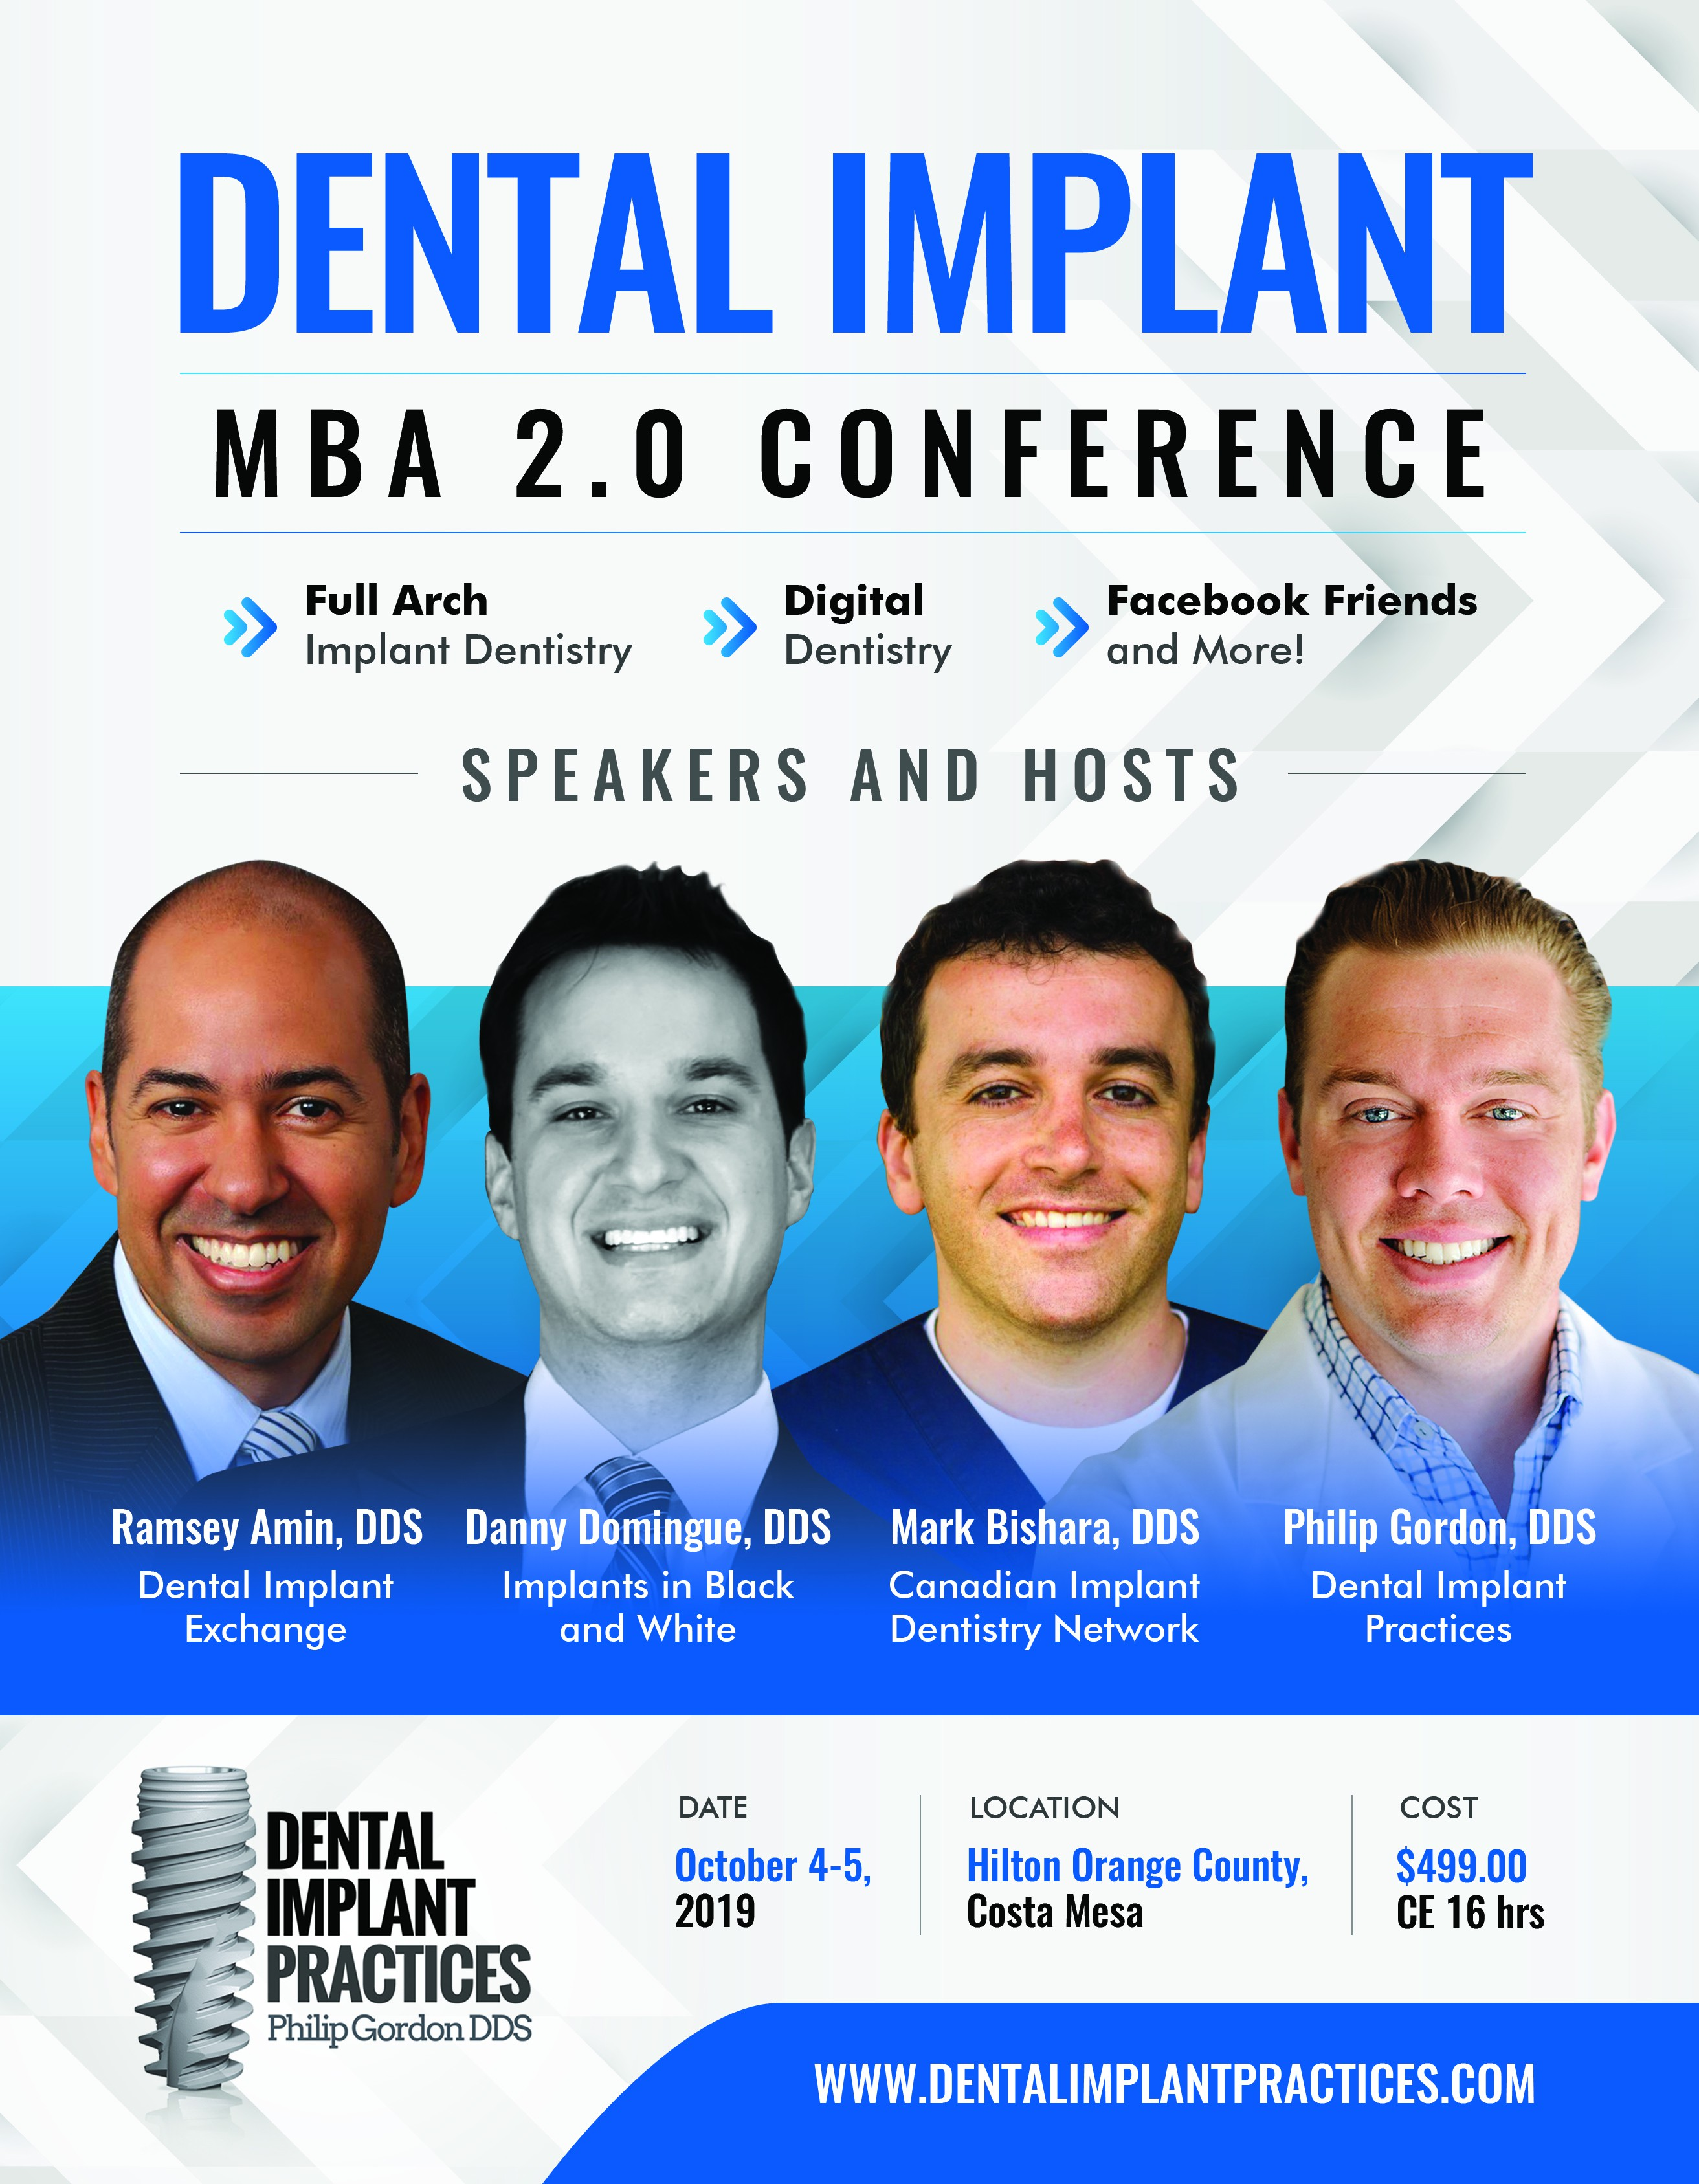 Dental Implant MBA Conference 2.0